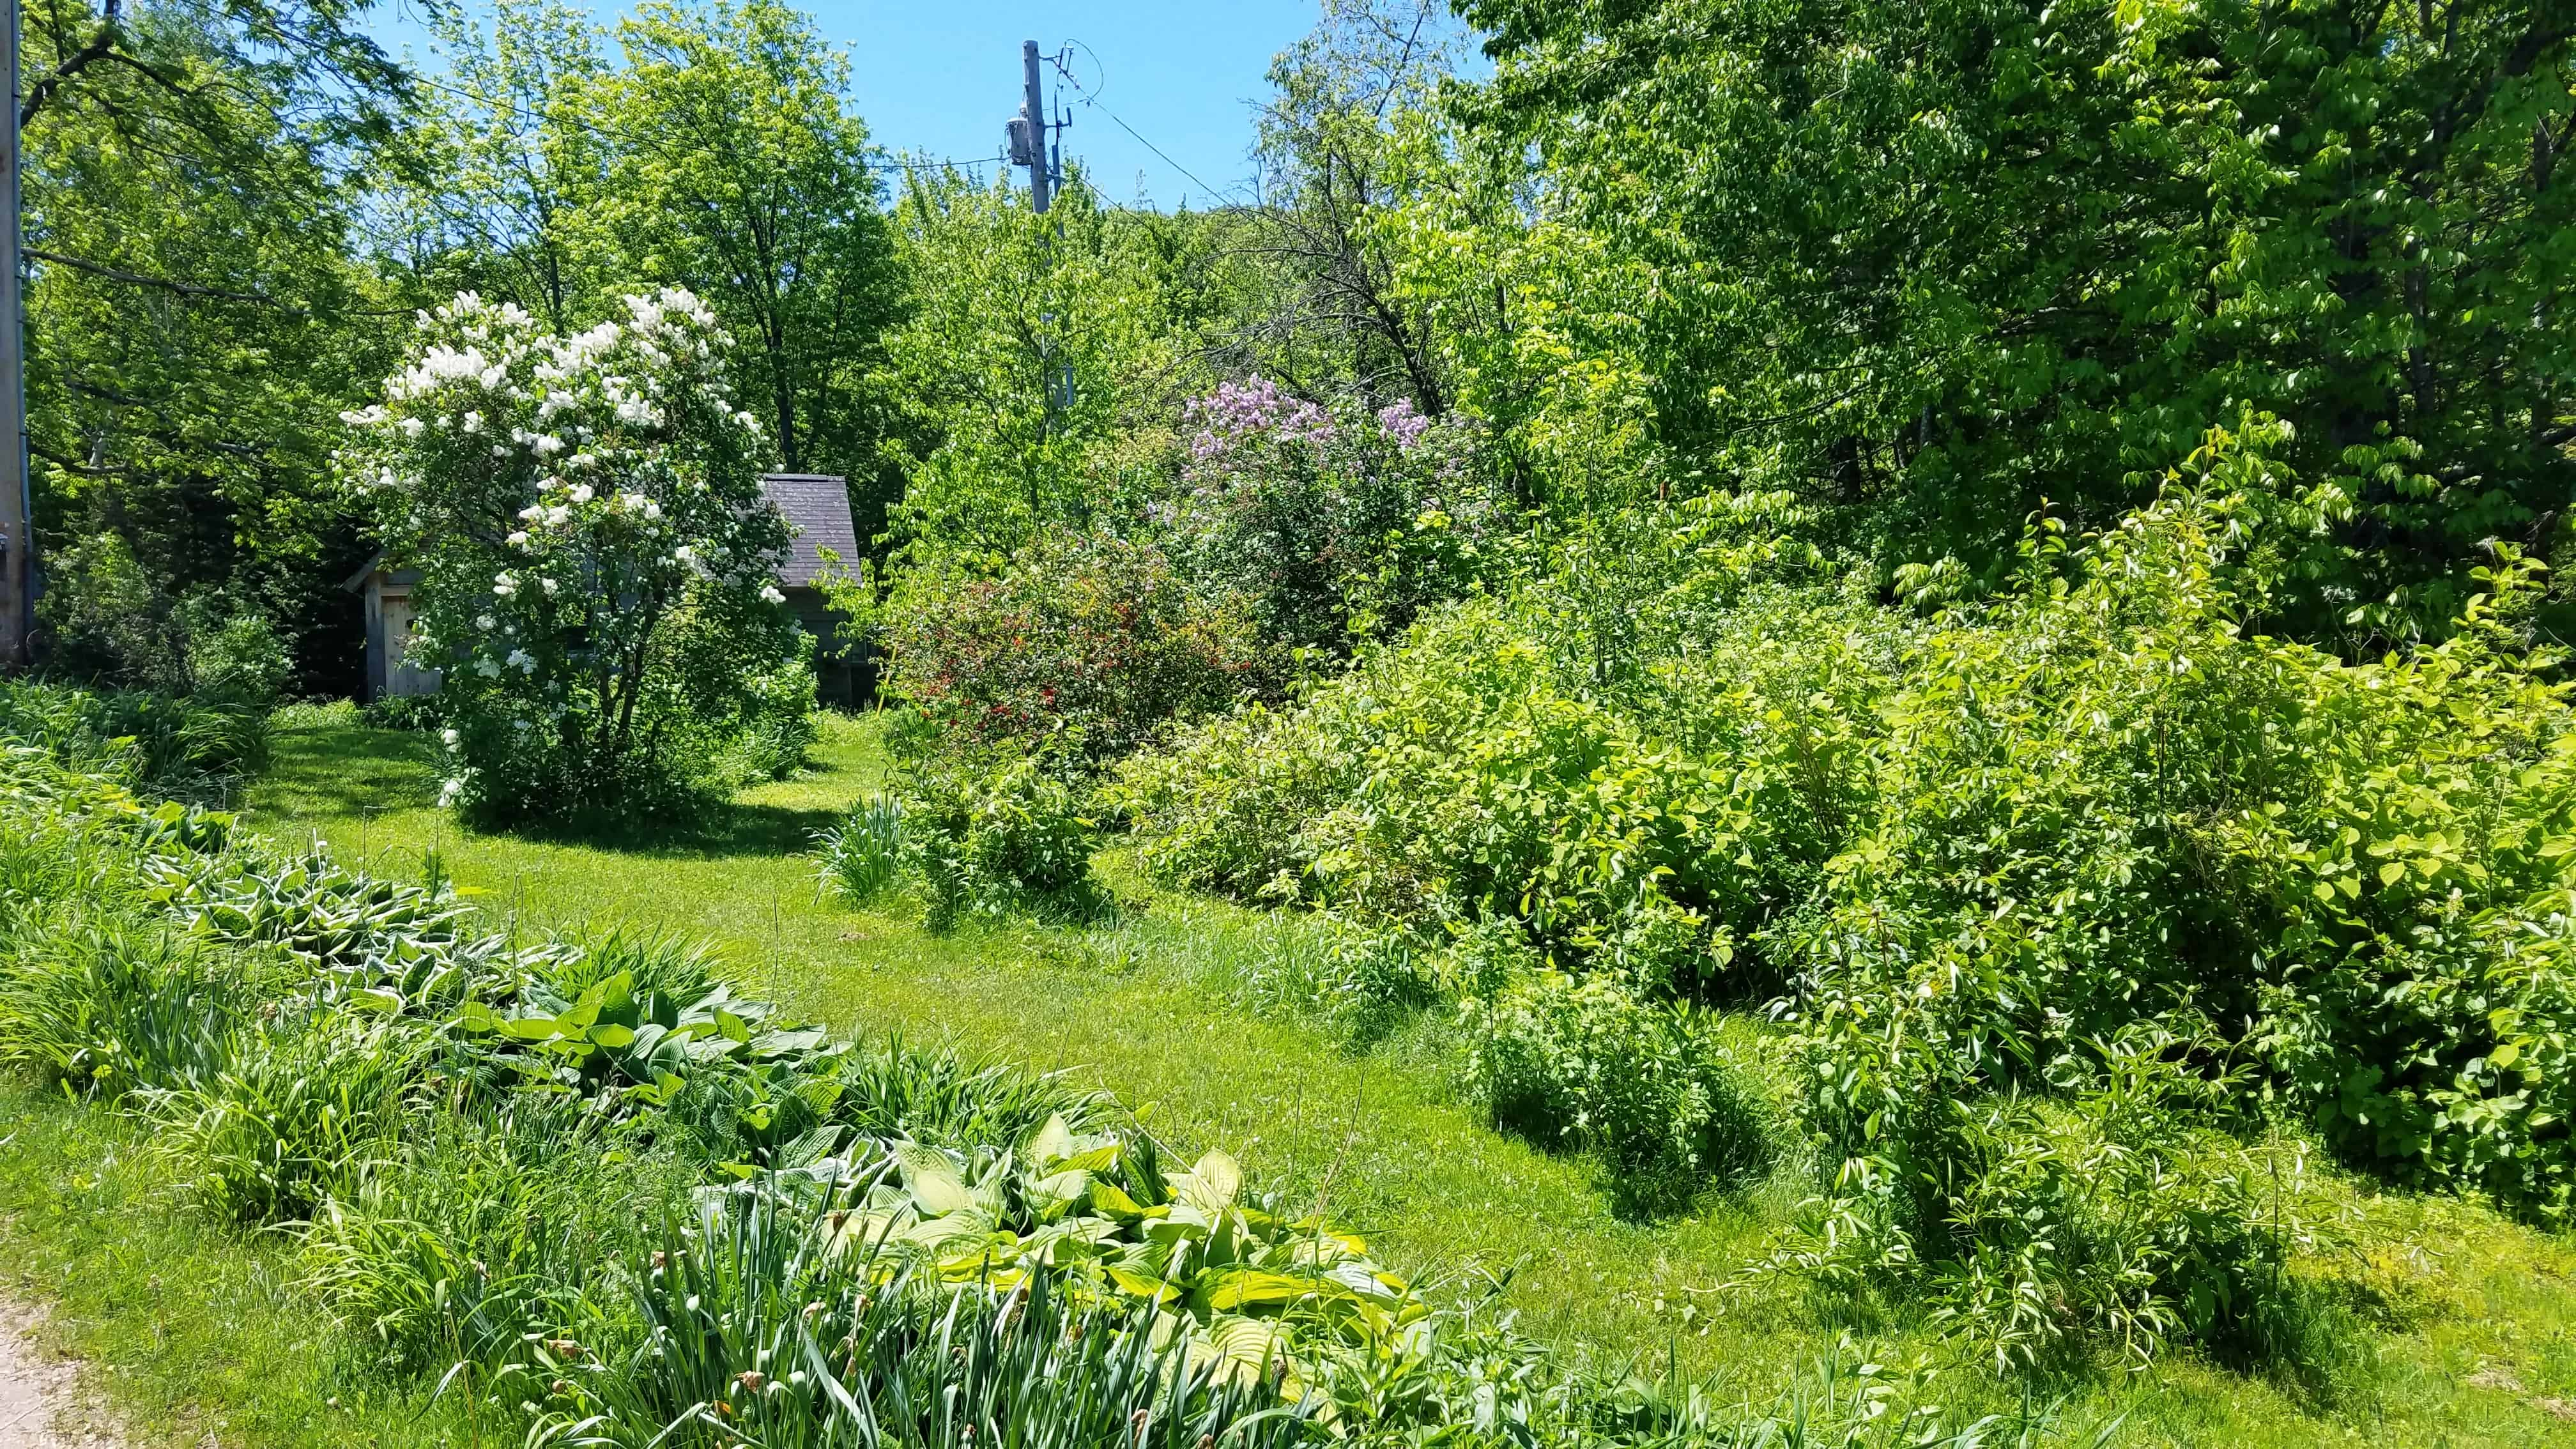 Landscaping 115 Sandwich Notch Road, Thornton, NH 03285 Alpine Lakes Real Estate